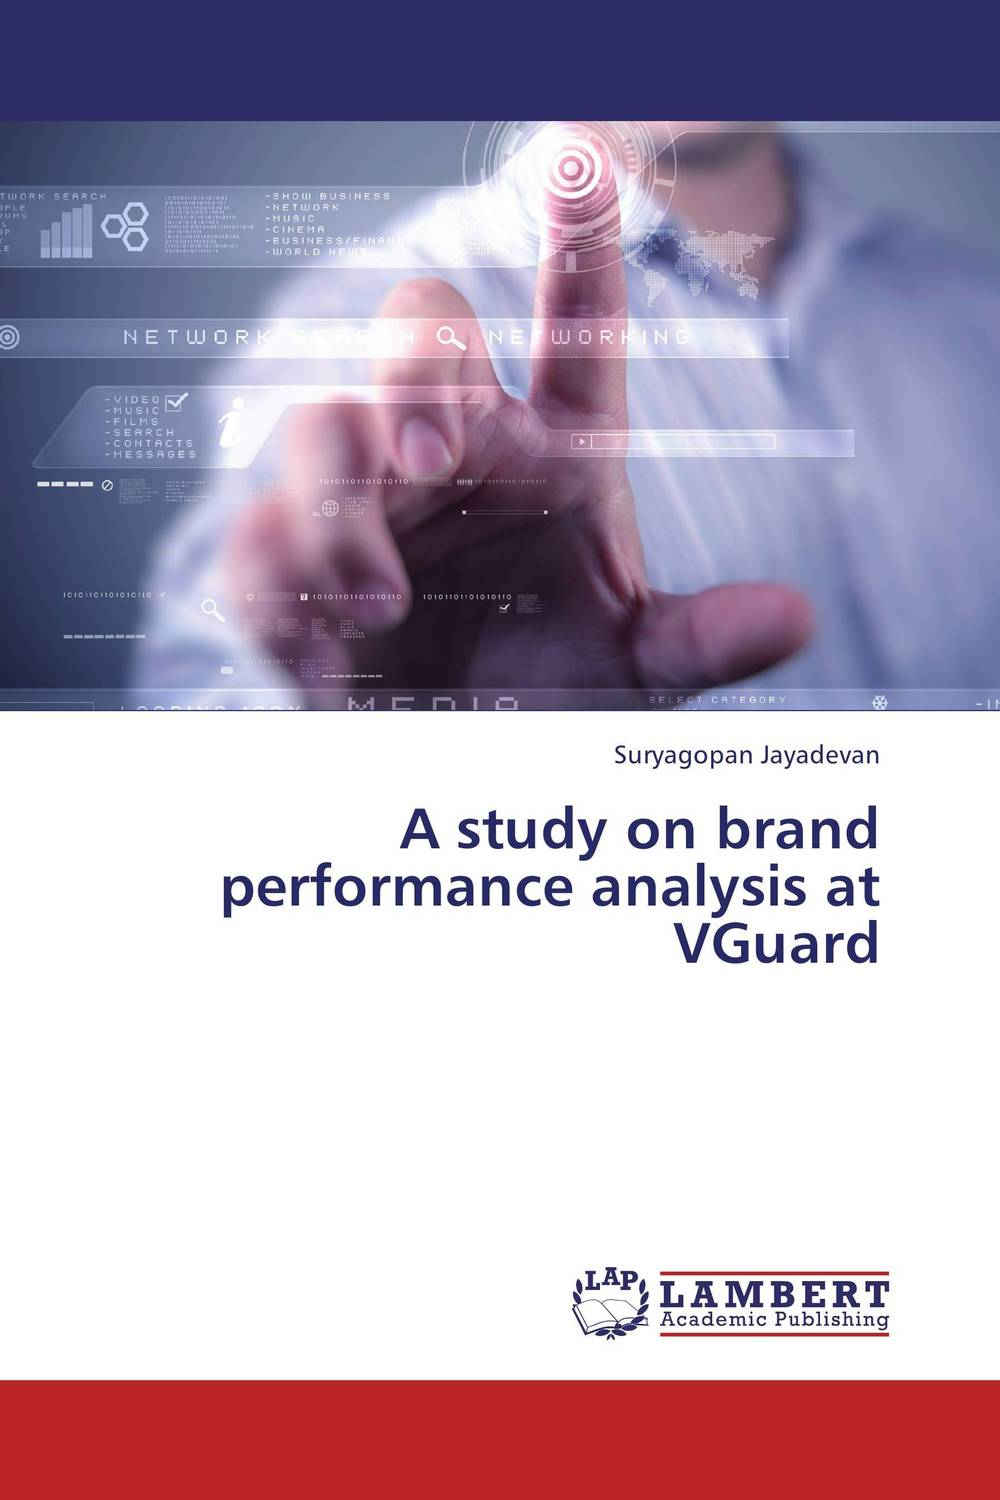 A study on brand performance analysis at VGuard financial performance analysis of general insurance companies in india